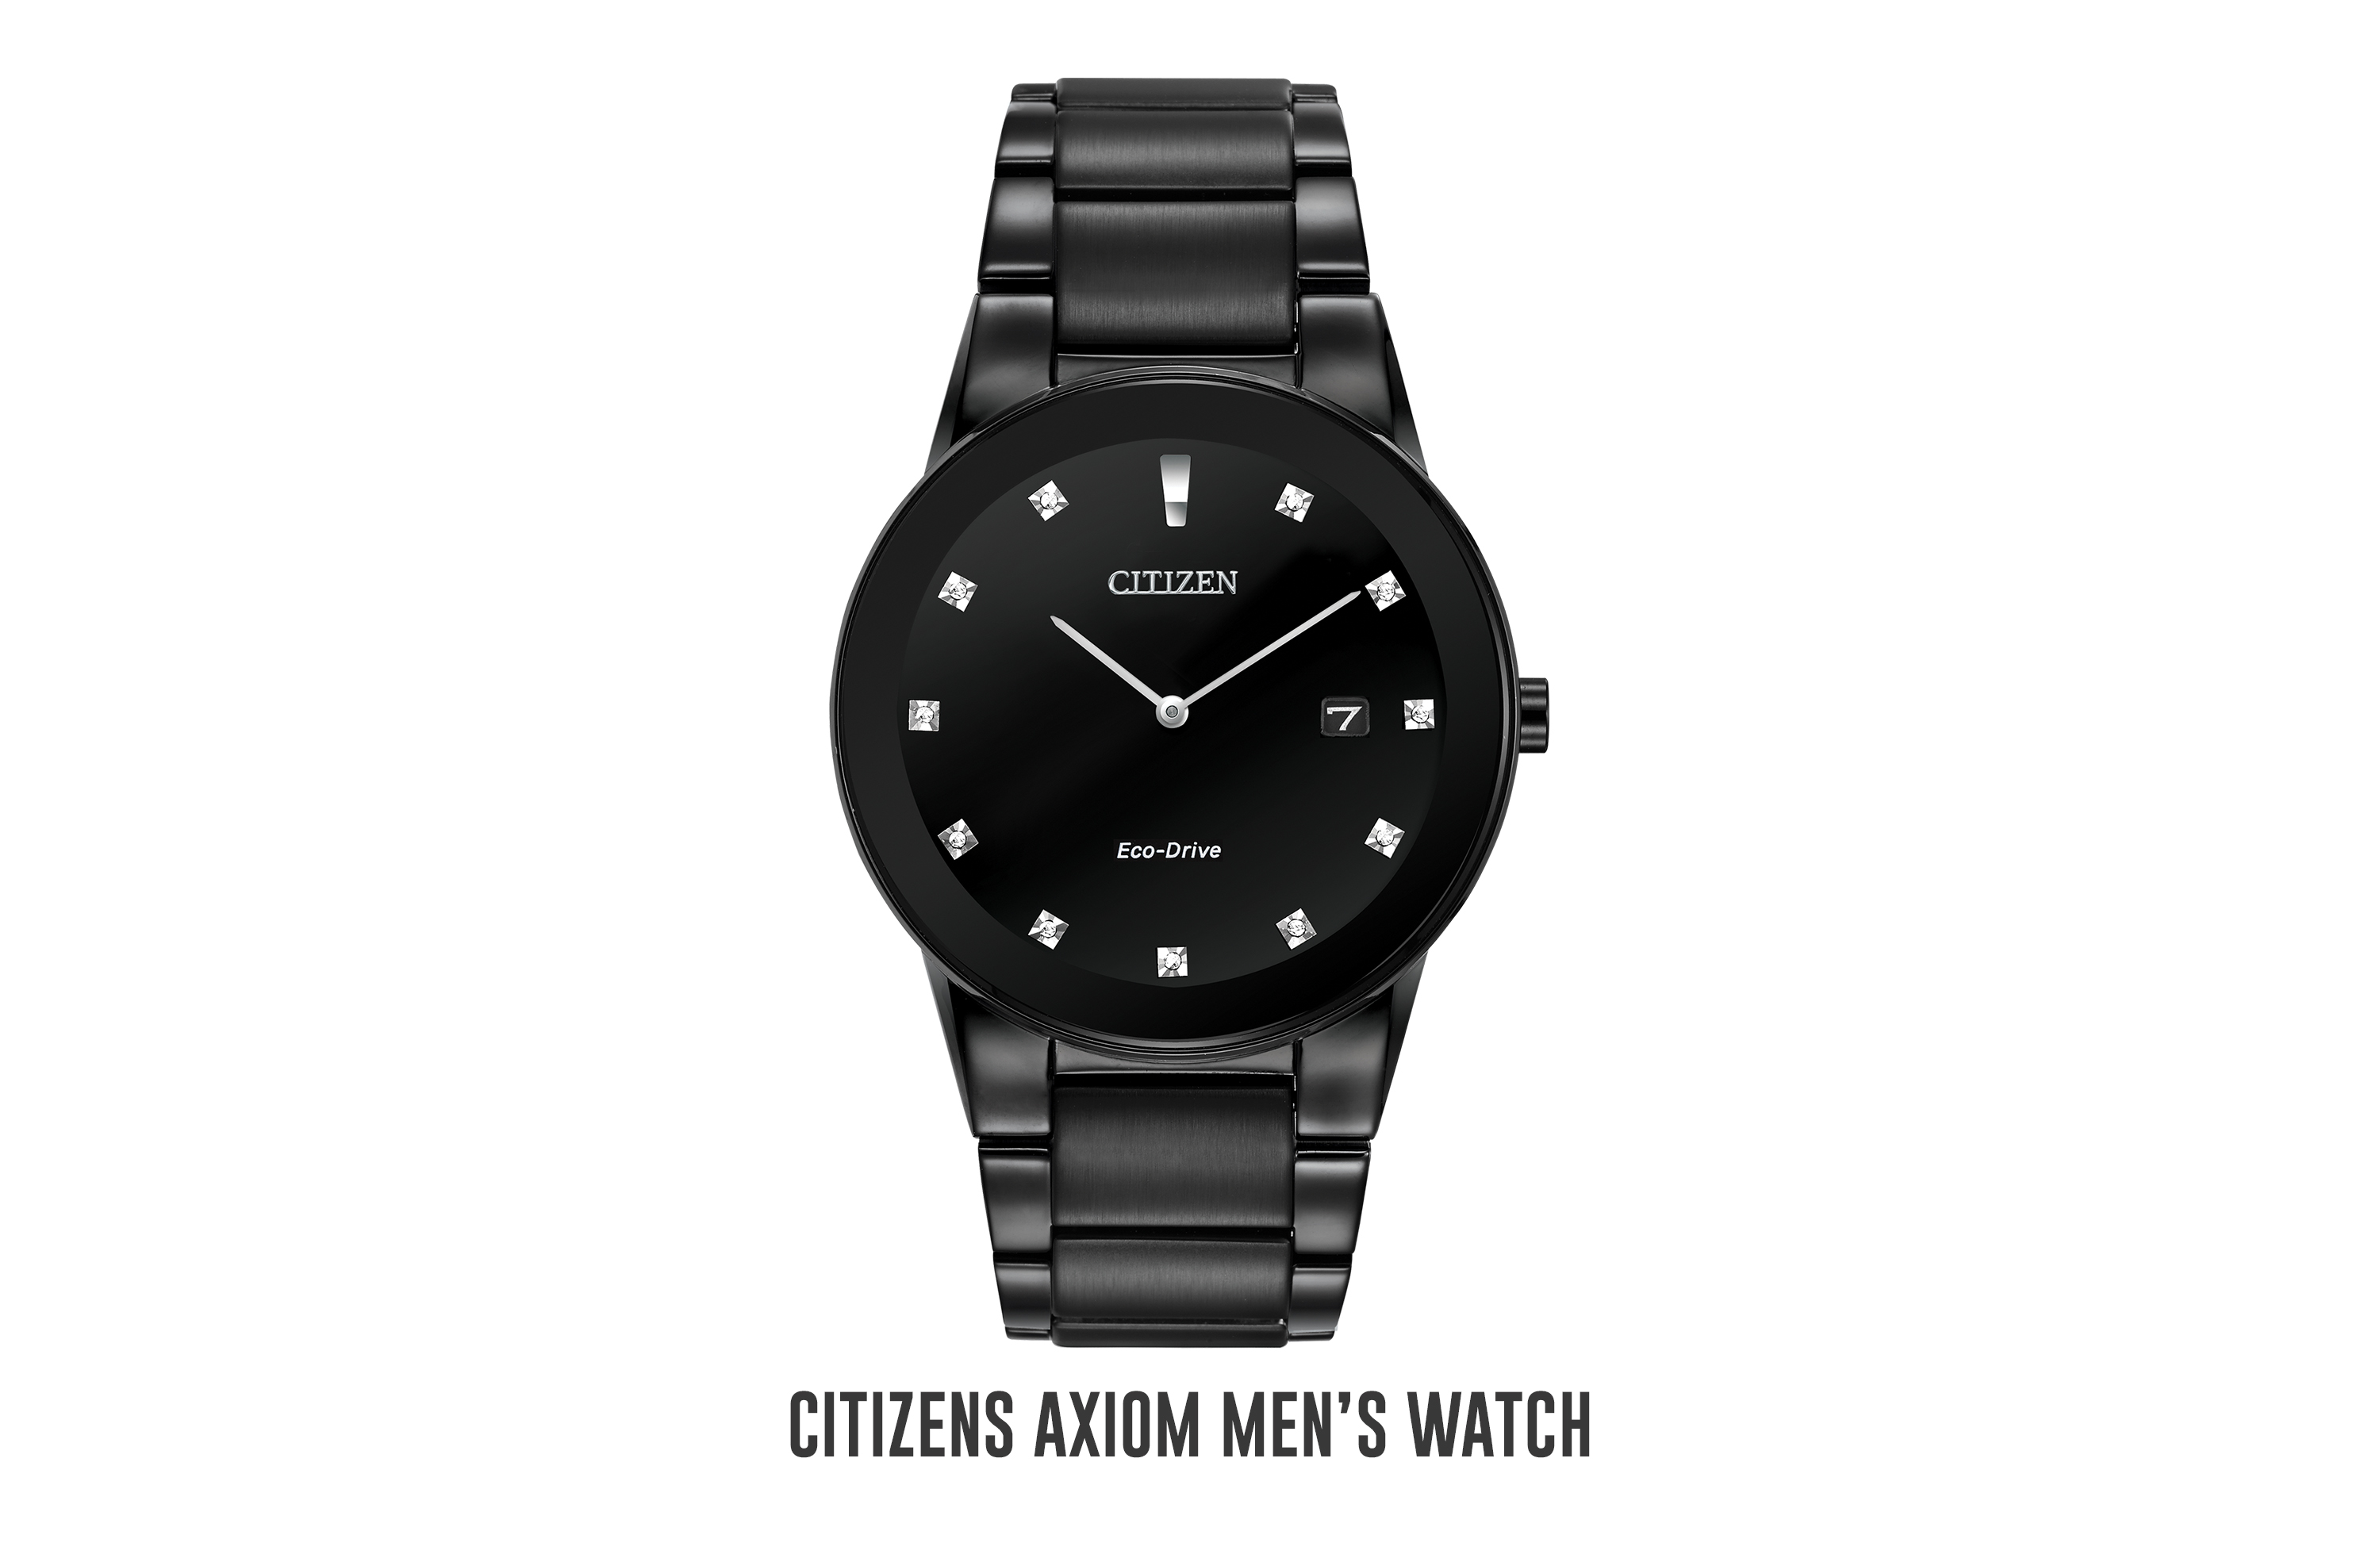 Citizens Axiom men's watch